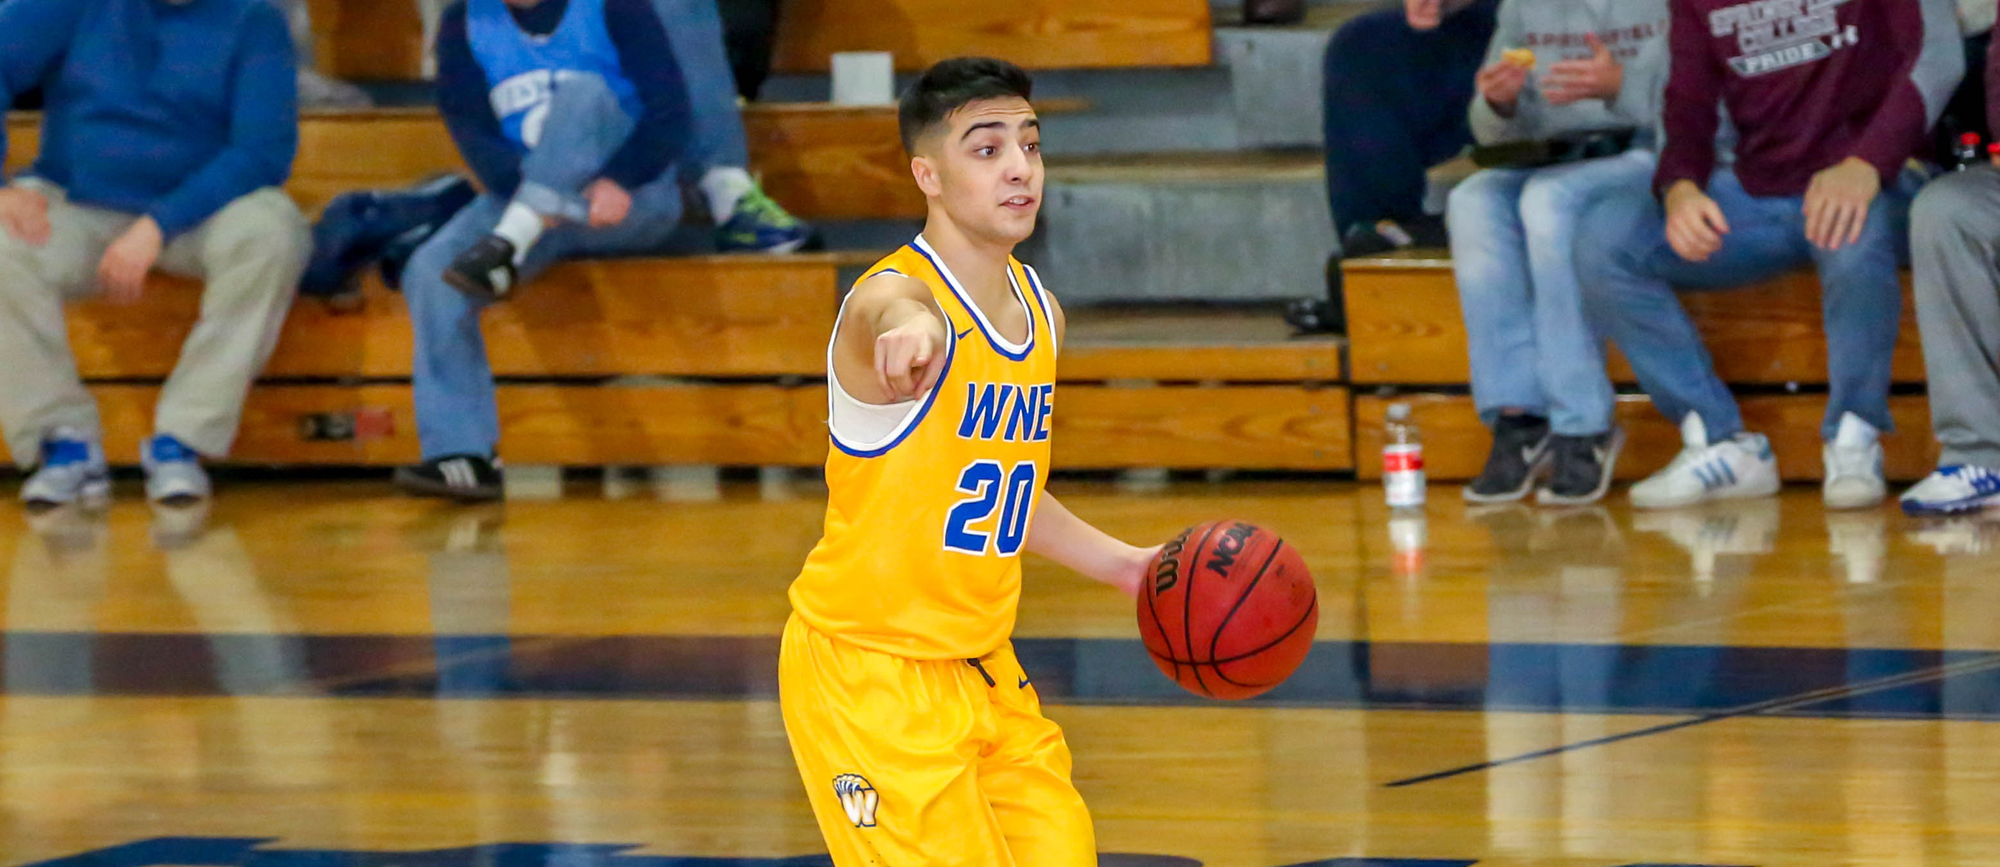 Gordon Pulls Away in Second Half for 74-59 Victory over Golden Bears